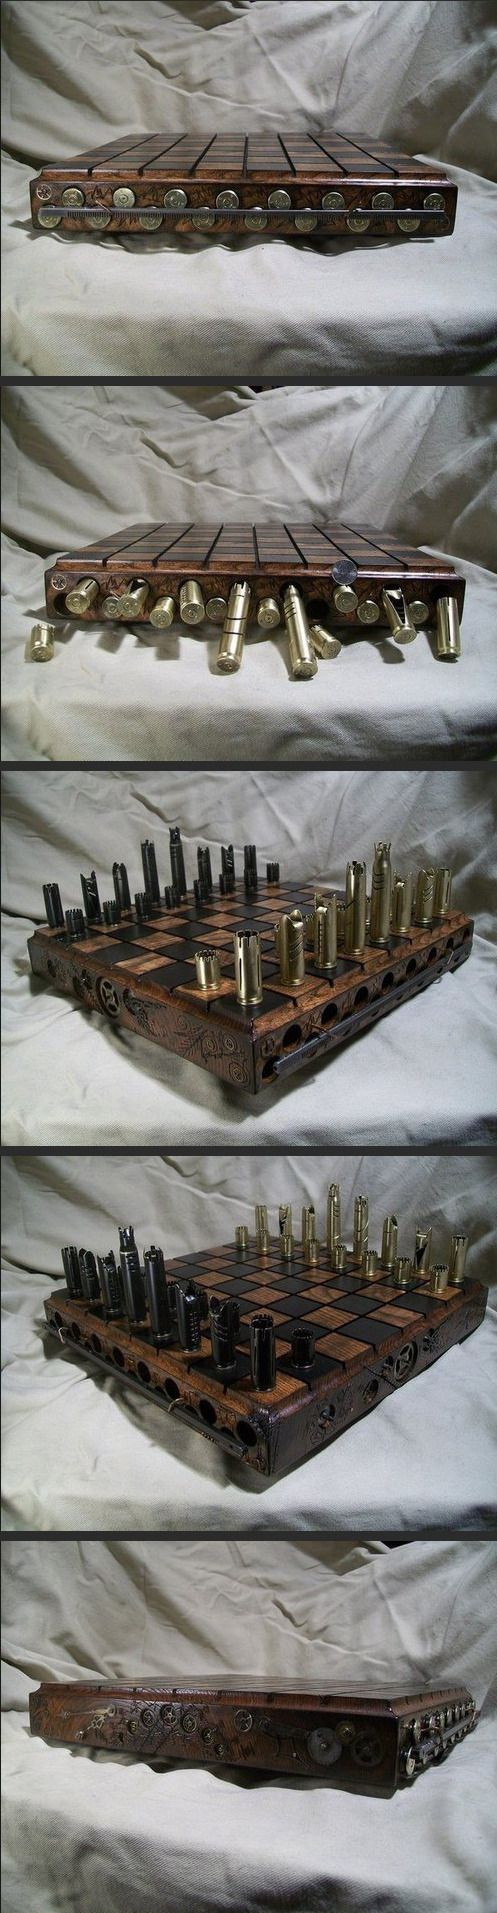 Possibly the coolest chess set i have ever seen.